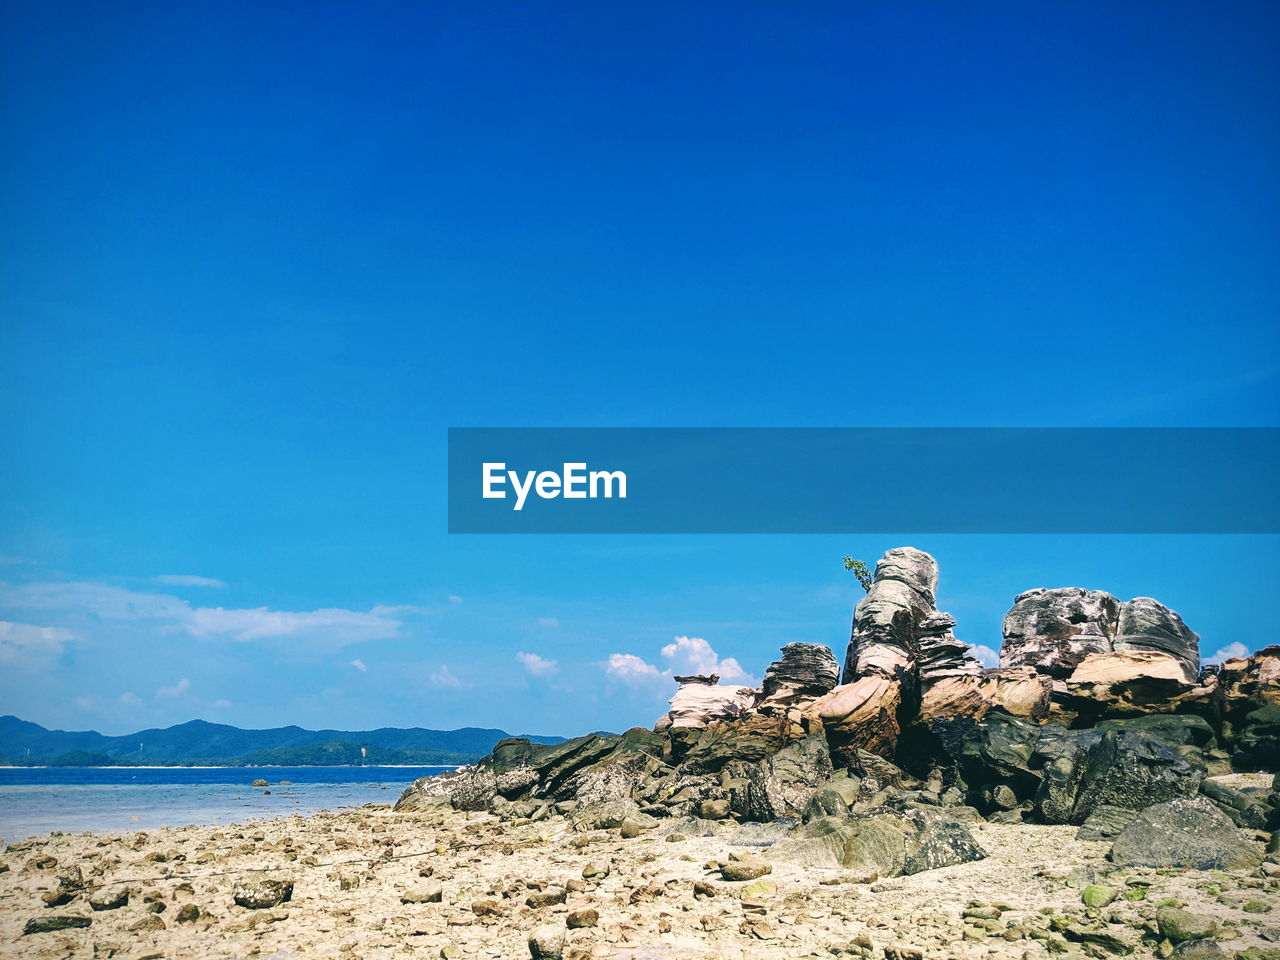 sky, blue, rock, scenics - nature, beauty in nature, rock - object, solid, tranquil scene, tranquility, nature, copy space, day, rock formation, sea, land, no people, non-urban scene, sunlight, idyllic, water, outdoors, arid climate, eroded